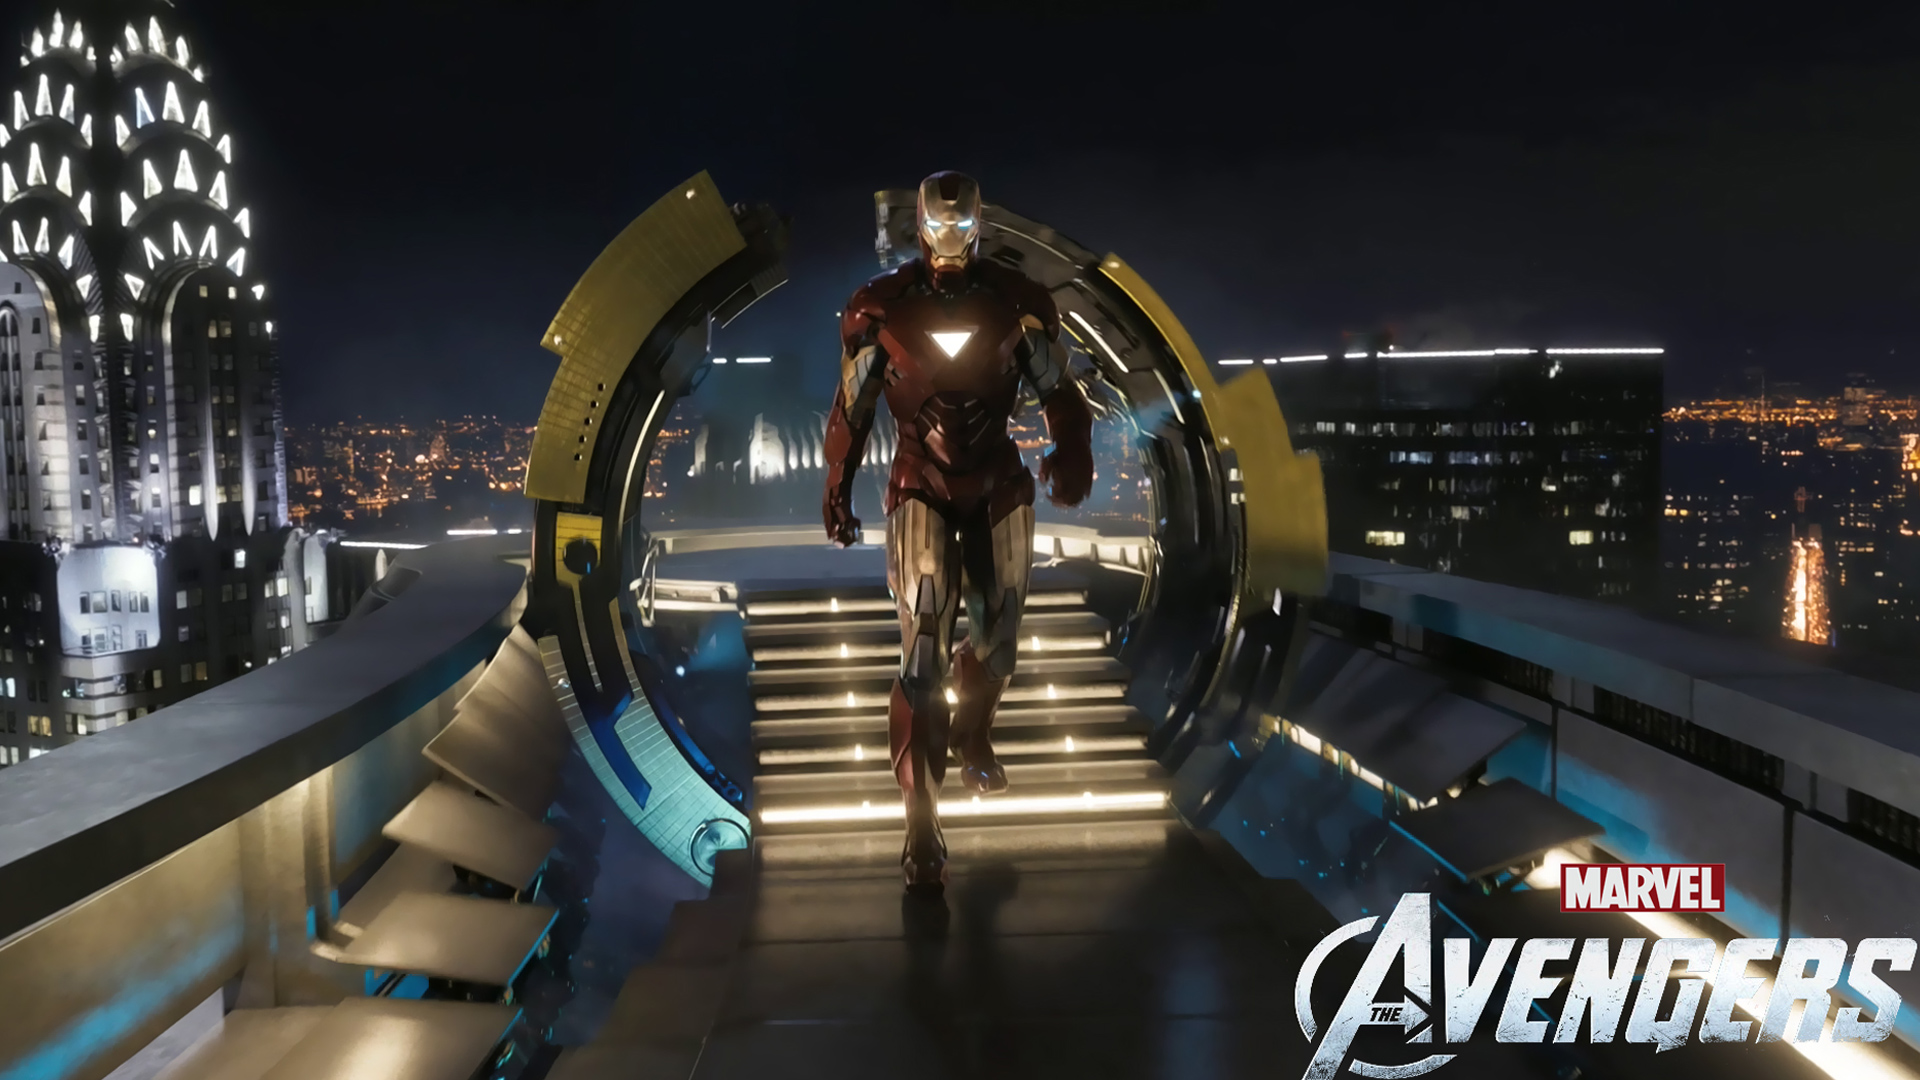 Iron Man in The Avengers Movie